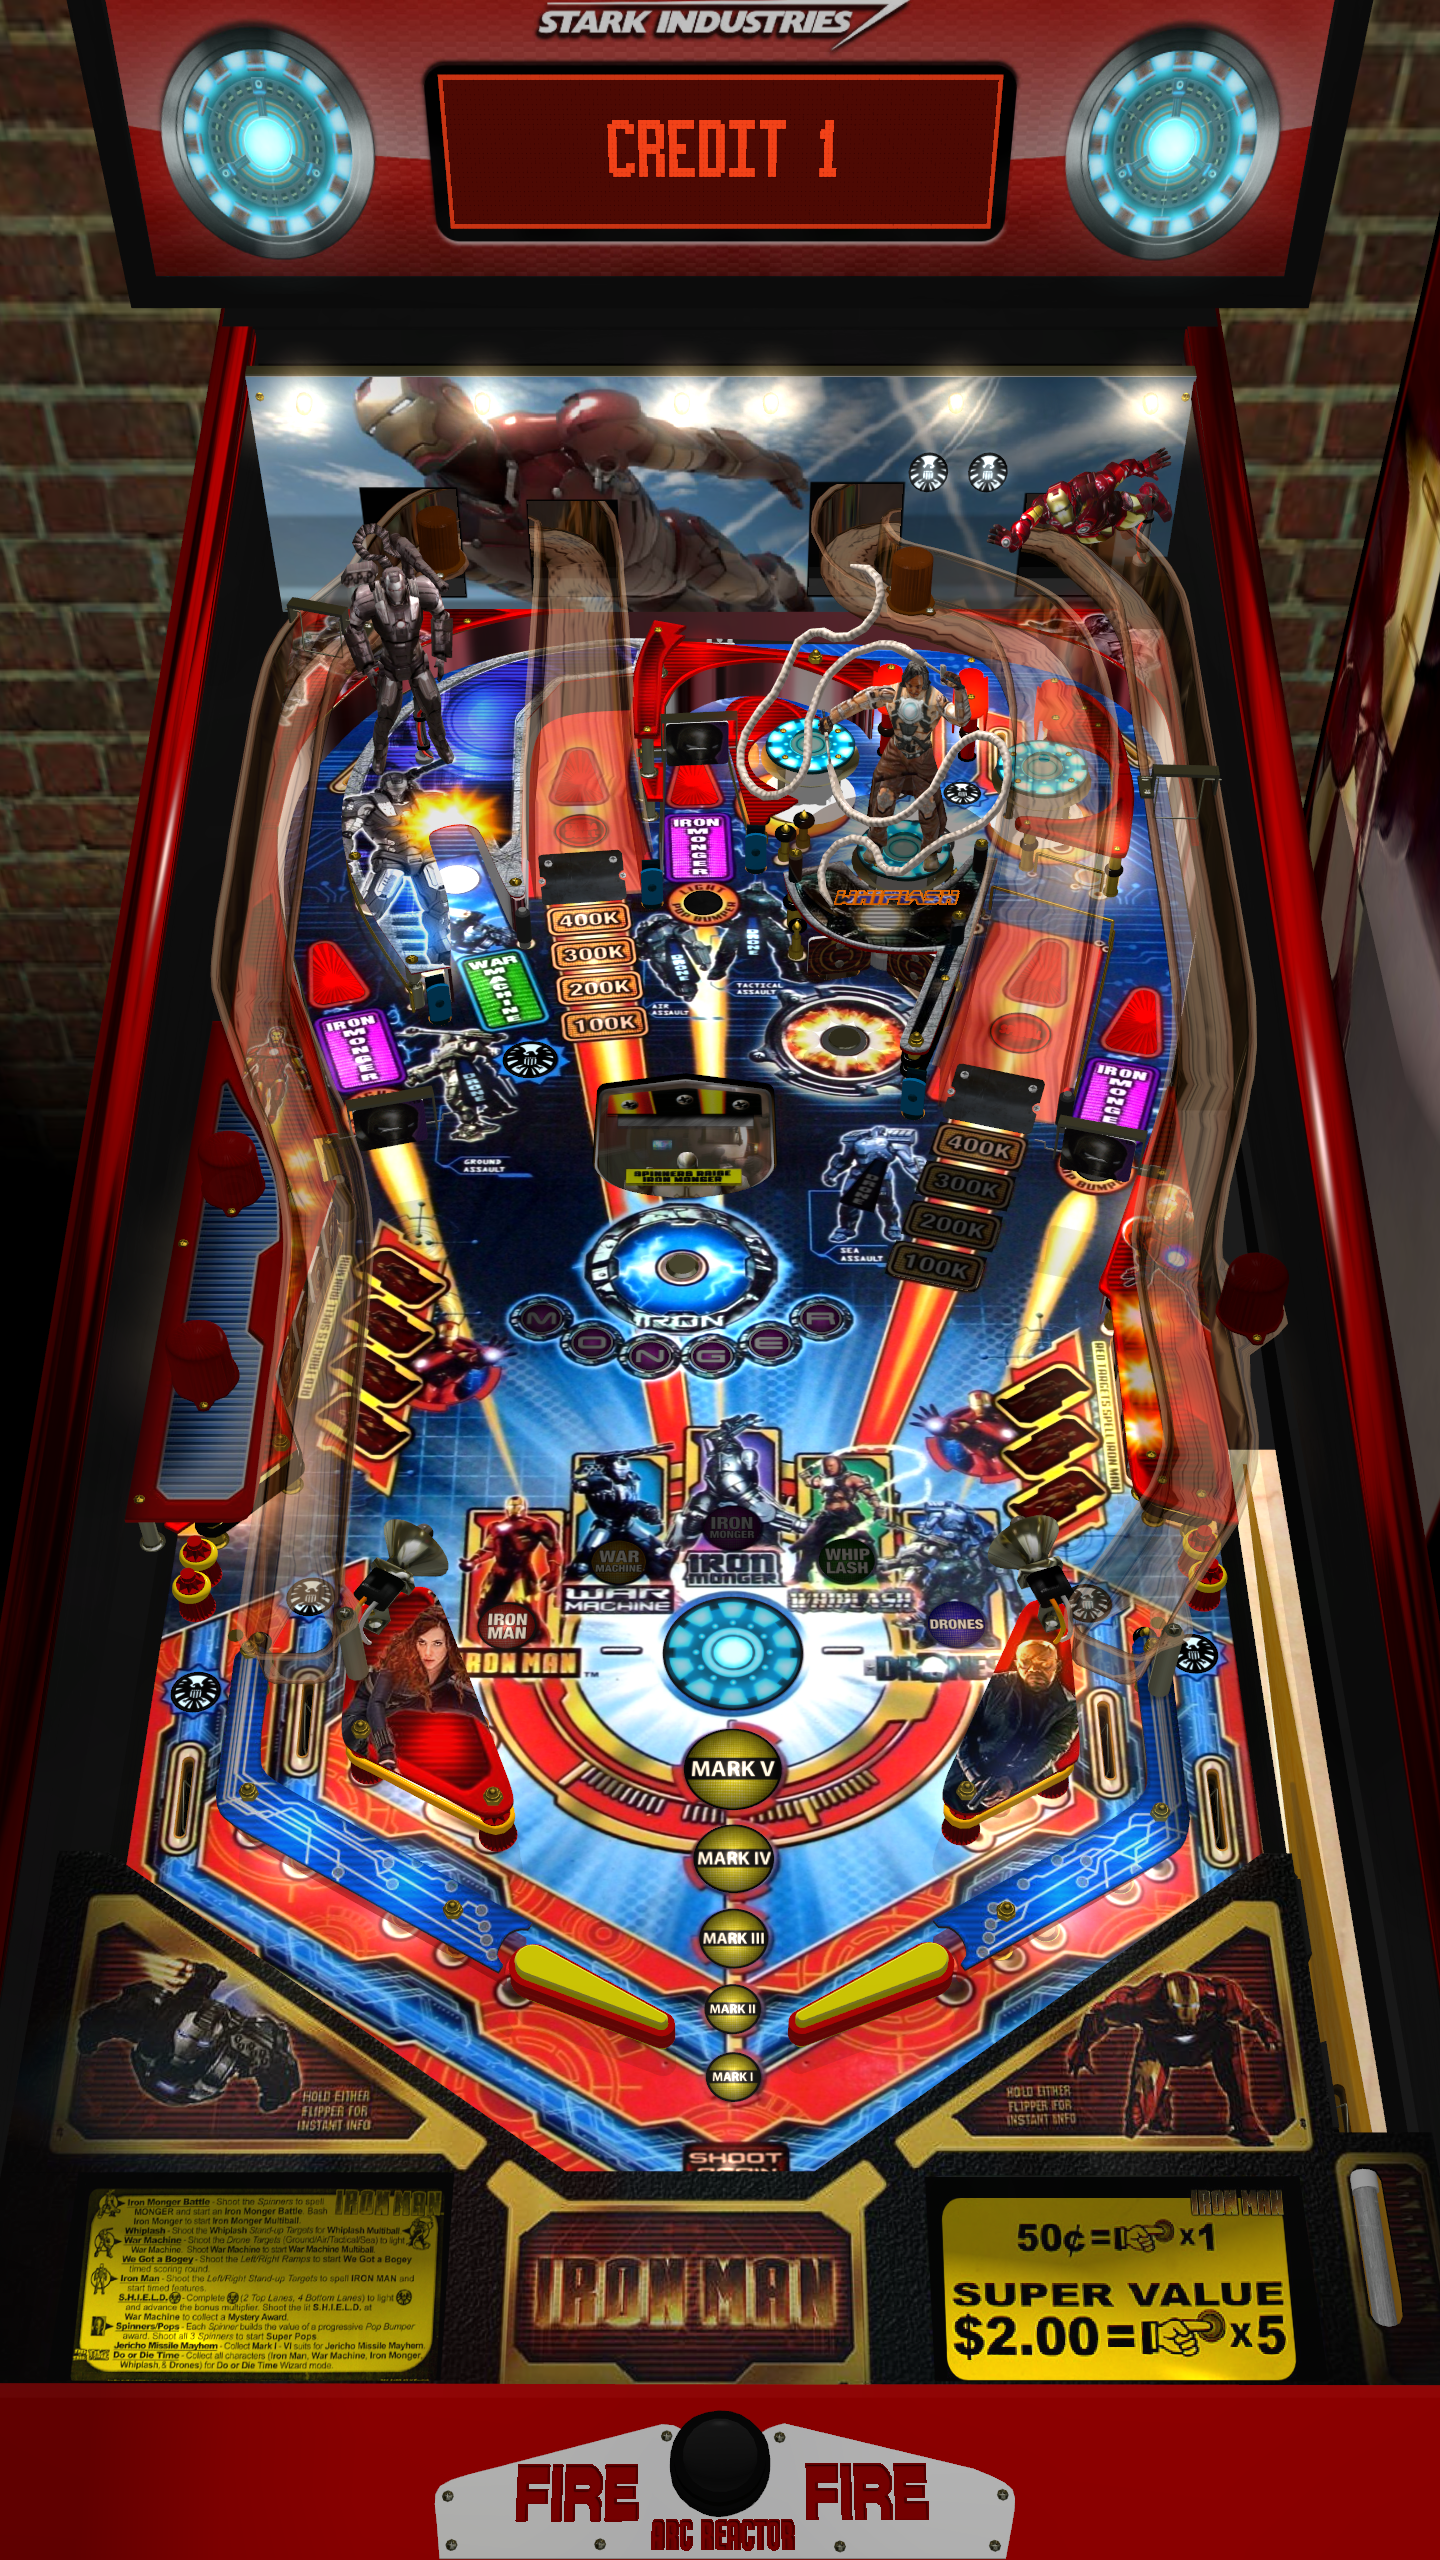 Playfield as it appears on a rotated display